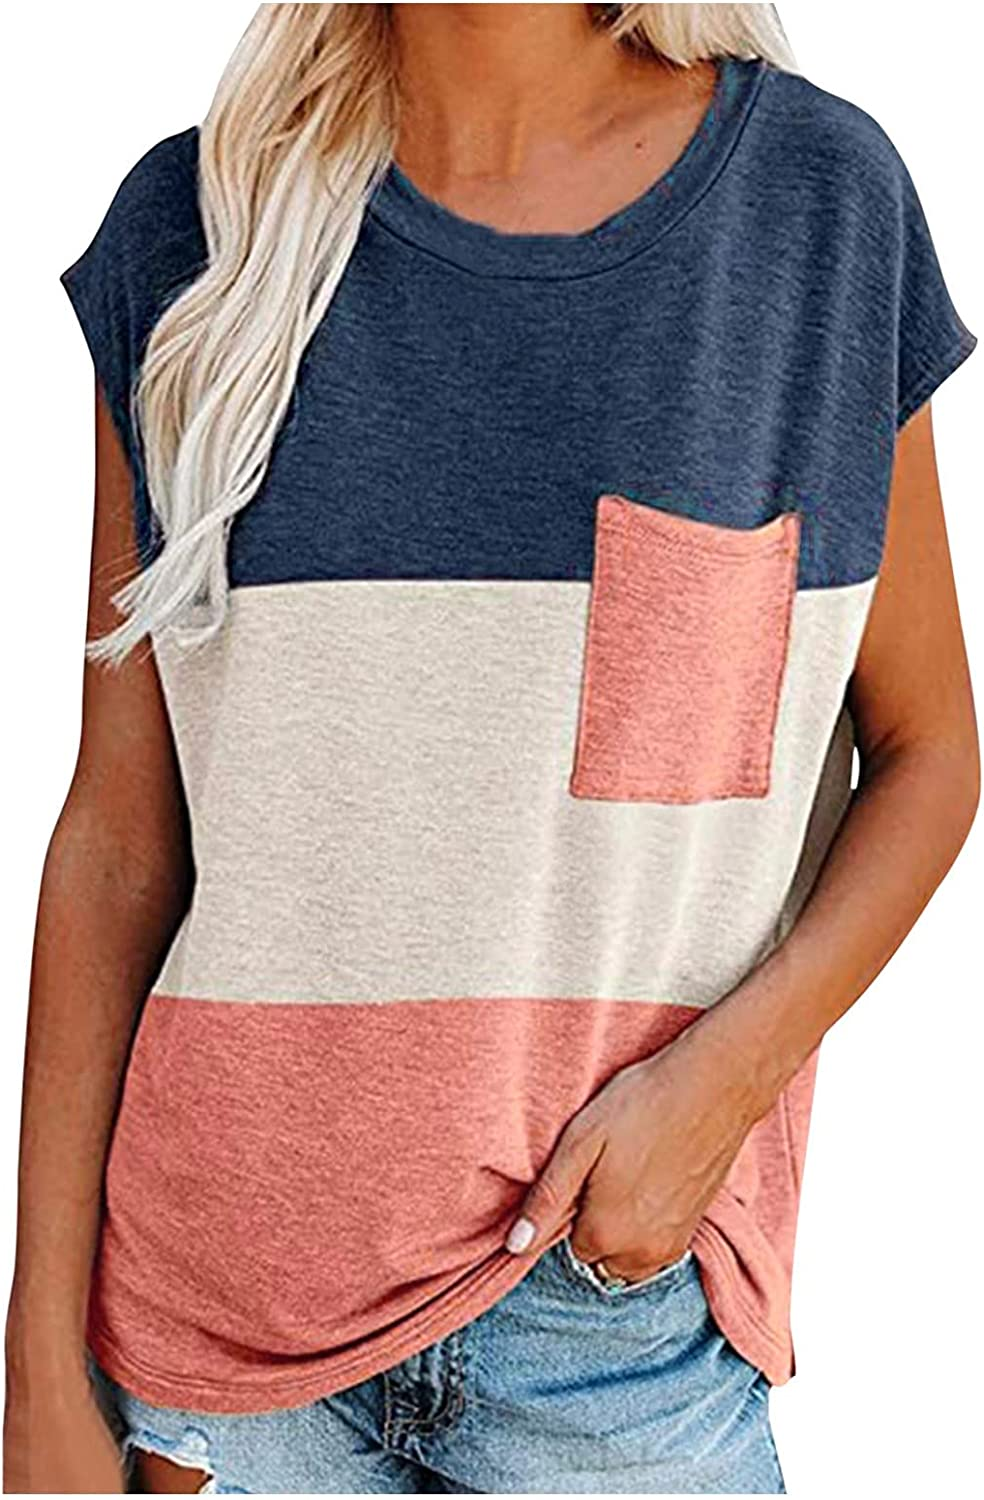 ManxiVoo Women's Round Neck Short Sleeve Color Blocking Patchwork T Shirts Blouse Top Tee with Pocket